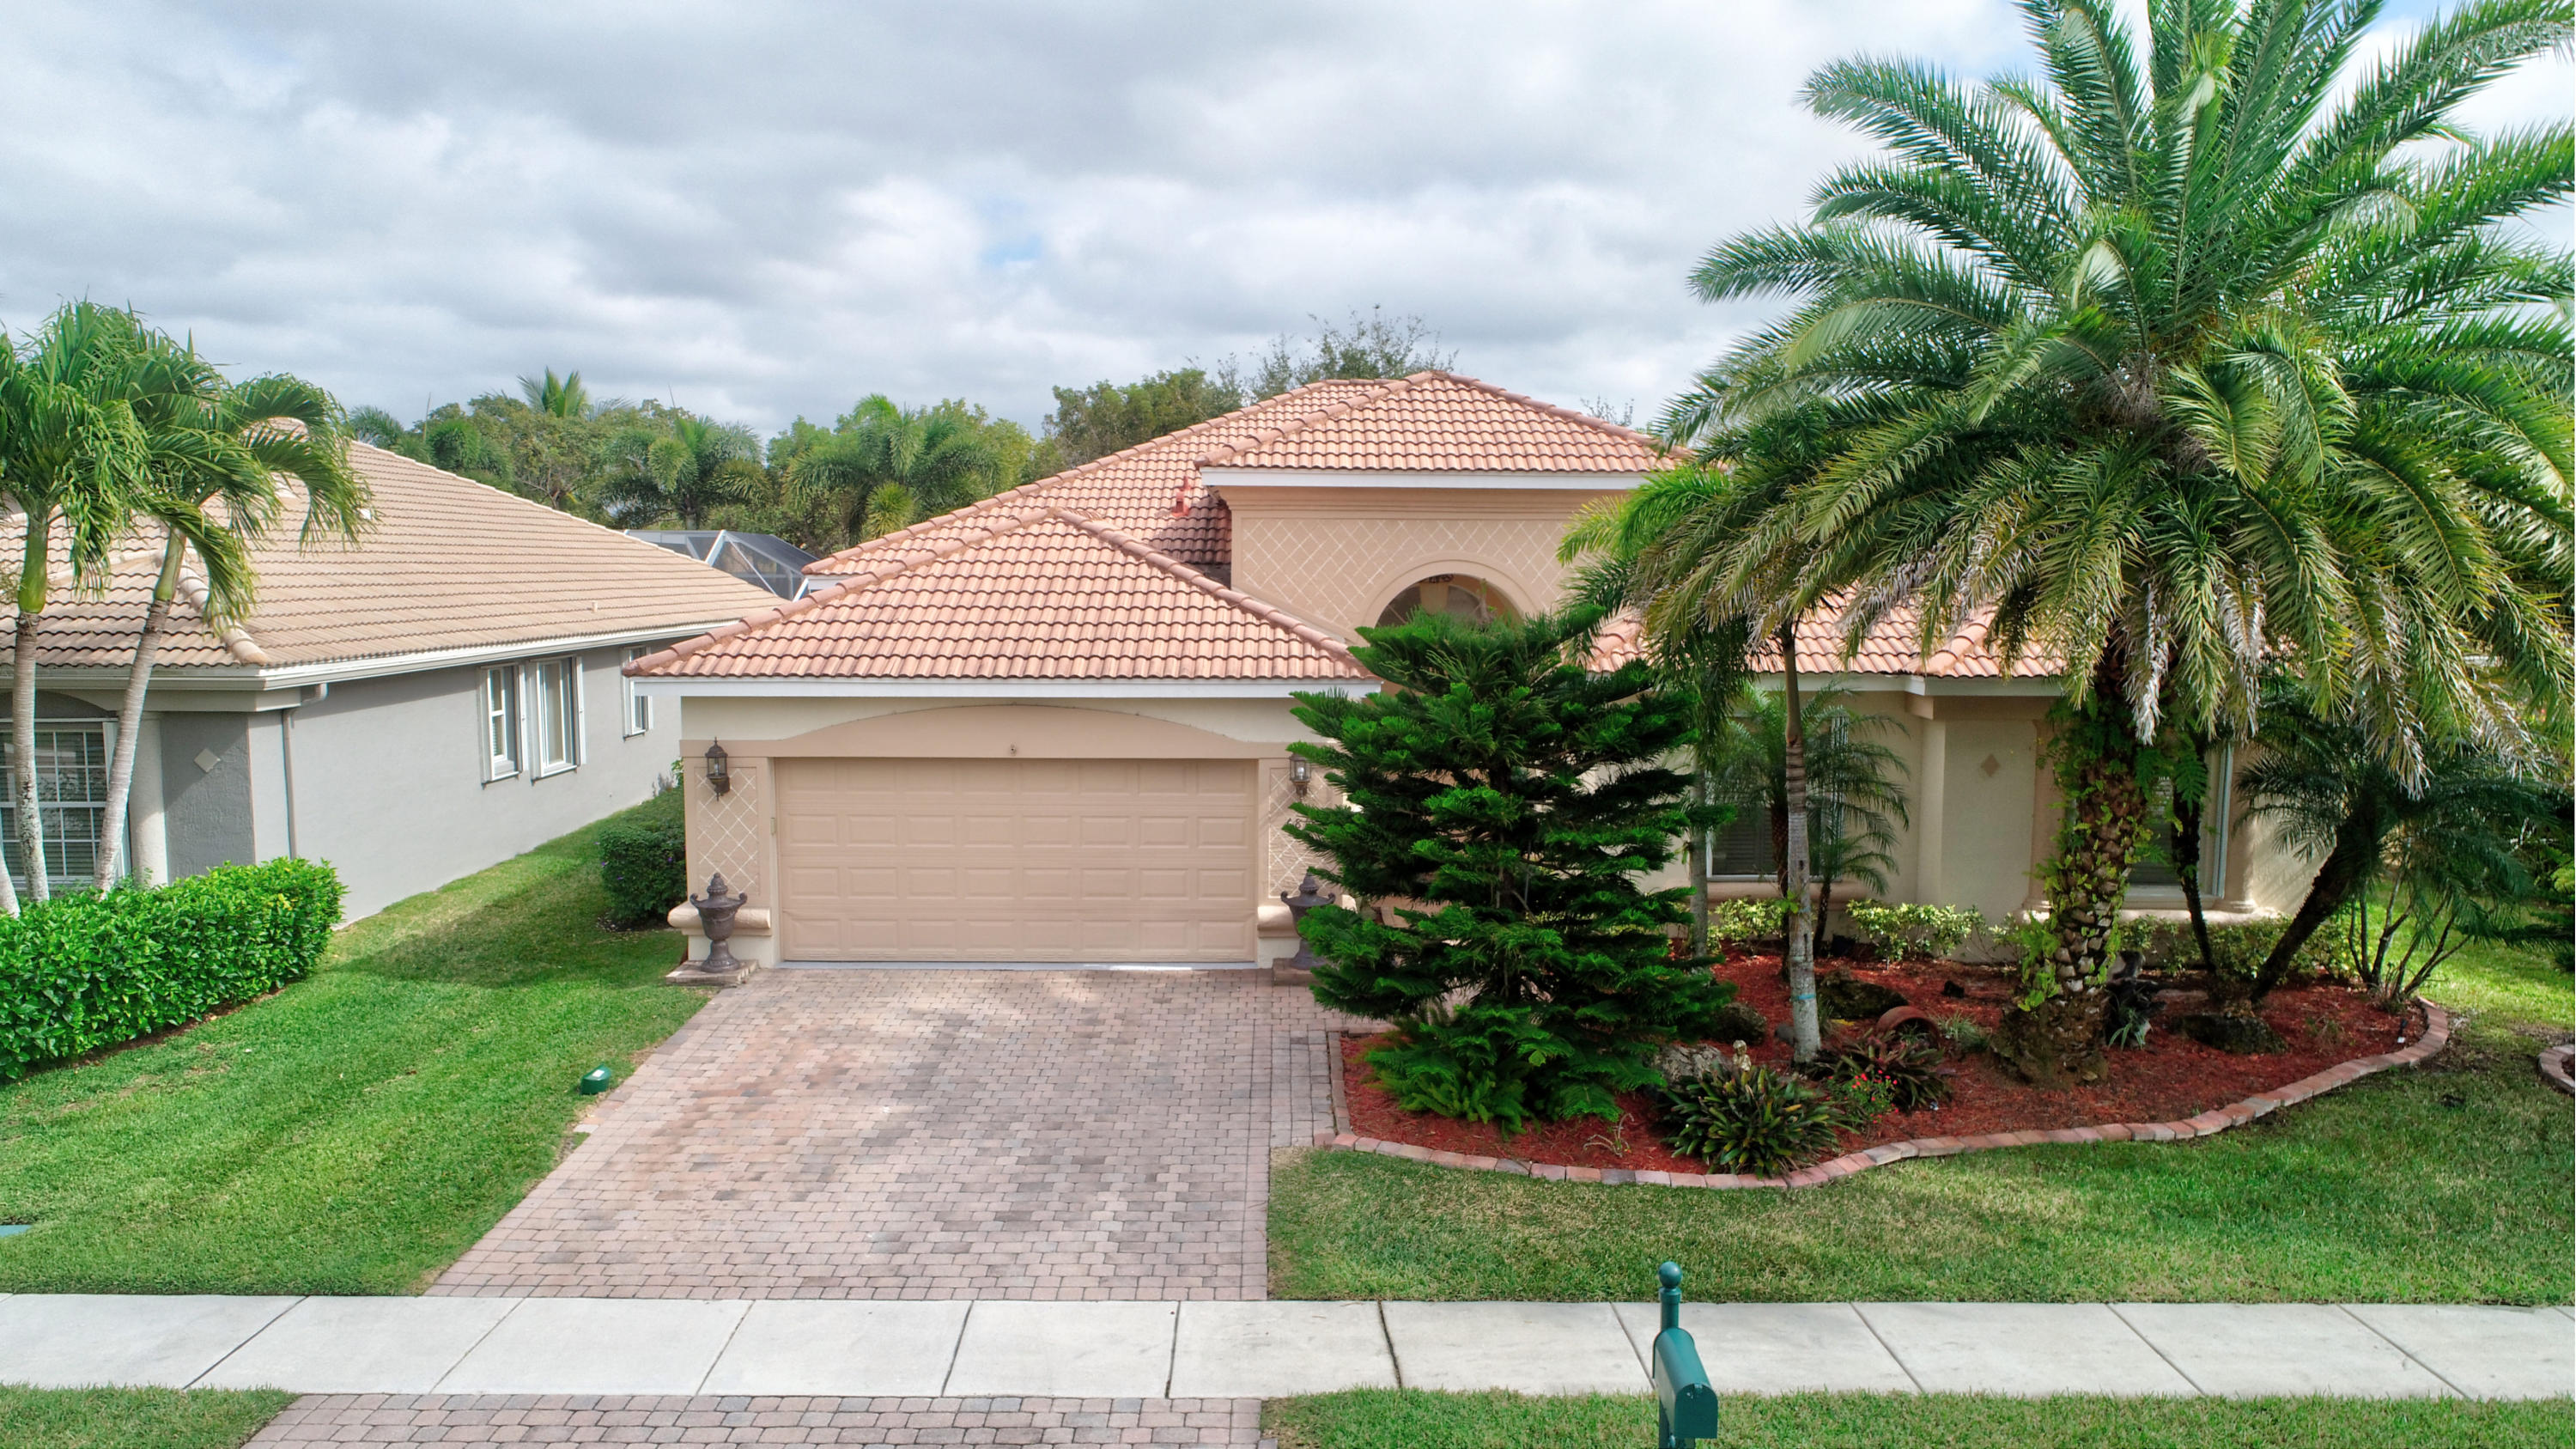 Home for sale in Villaggio Lake Worth Florida